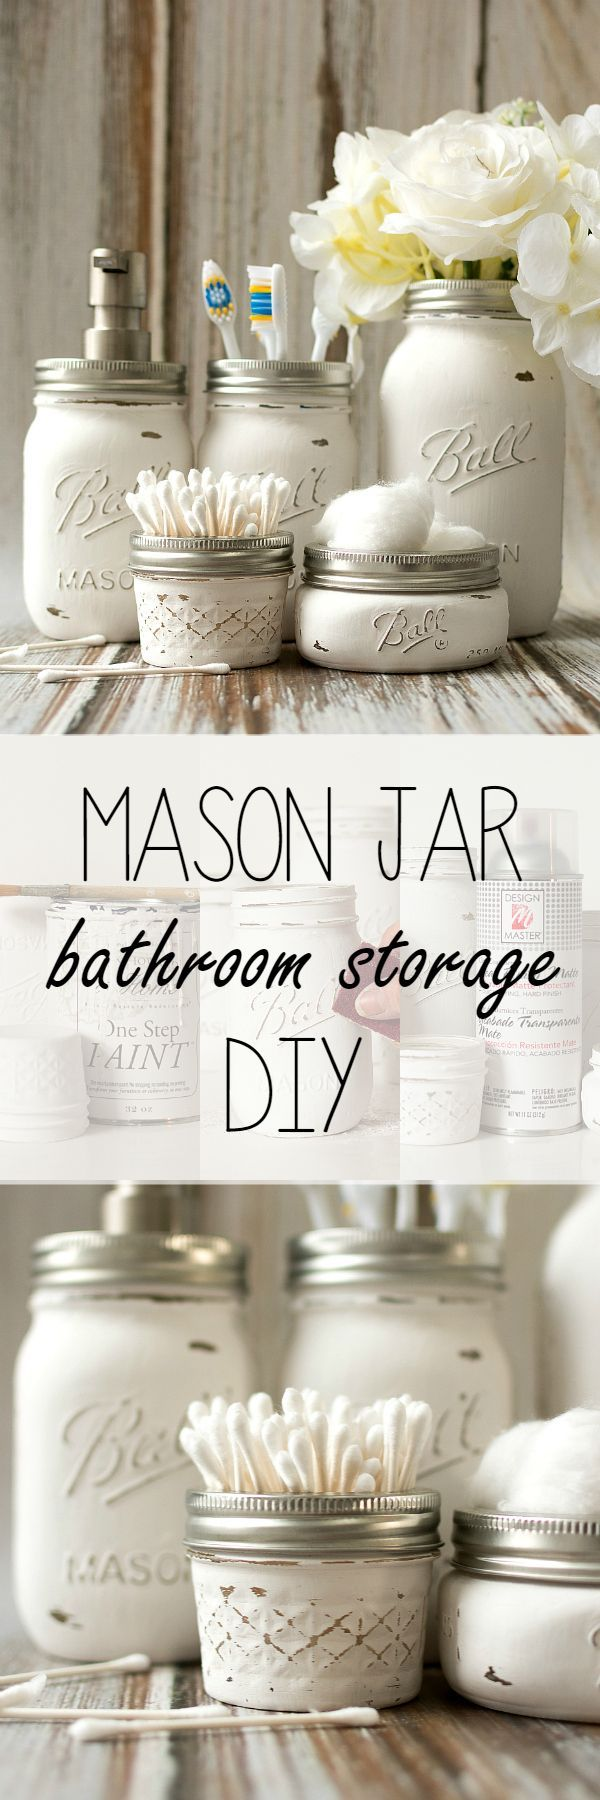 222 best organization dreaming in diy images on pinterest diy bathroom organizer ideas do it yourself pretty distressed mason jar bathroom organizers craft project solutioingenieria Choice Image